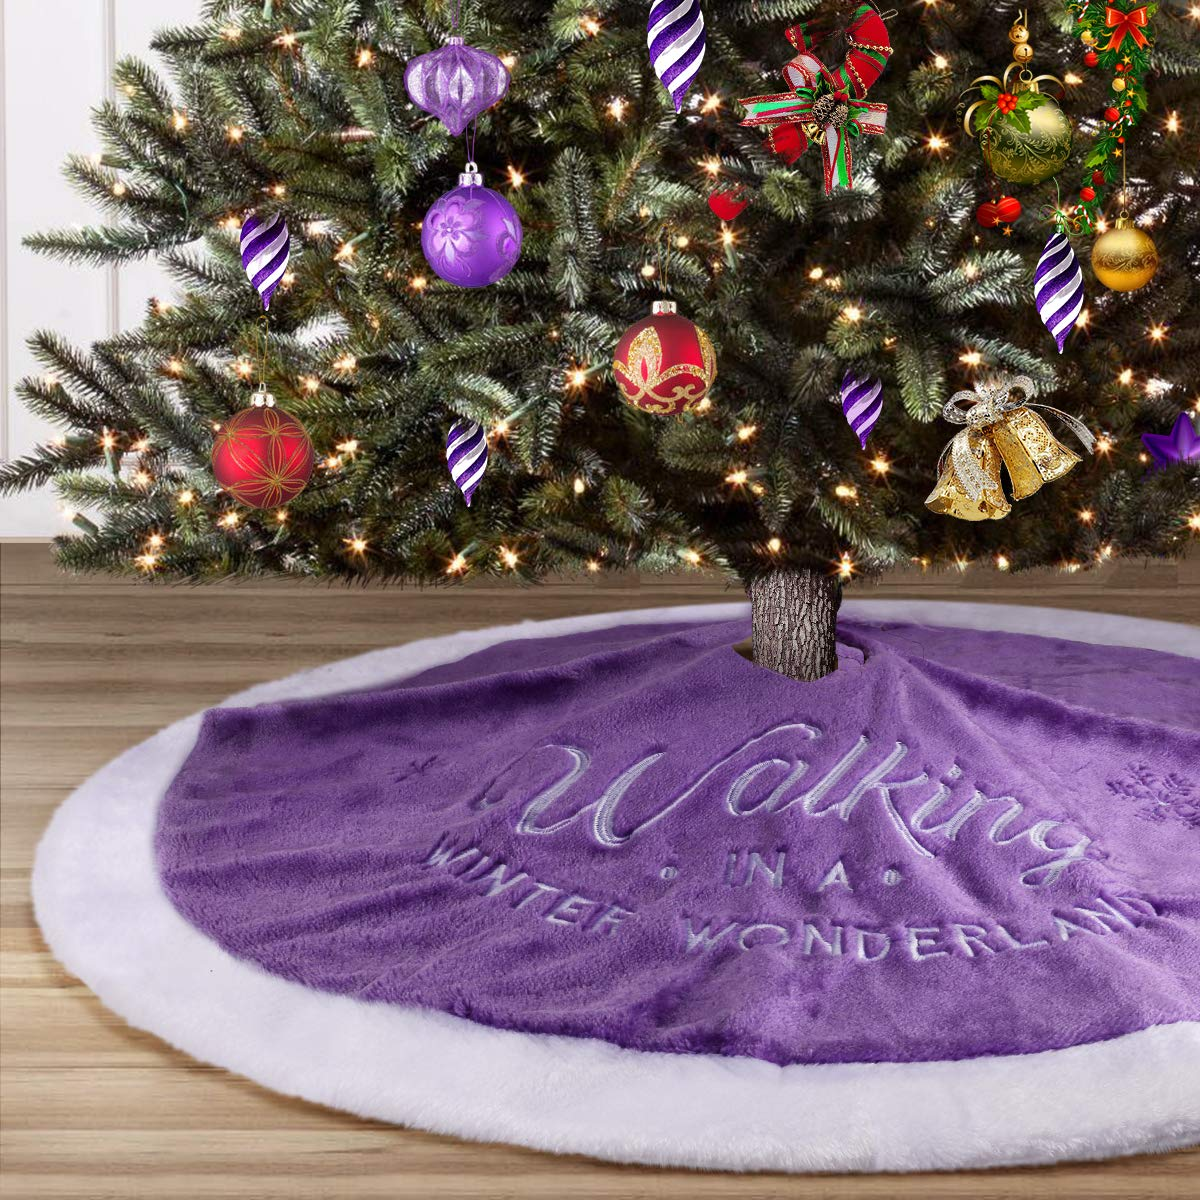 Purple Christmas Tree Skirt.Yuboo Christmas Tree Skirt 36 Inch Purple Plush Tree Skirt For Christmas Decorations For Xmas Party And Holiday Decorations